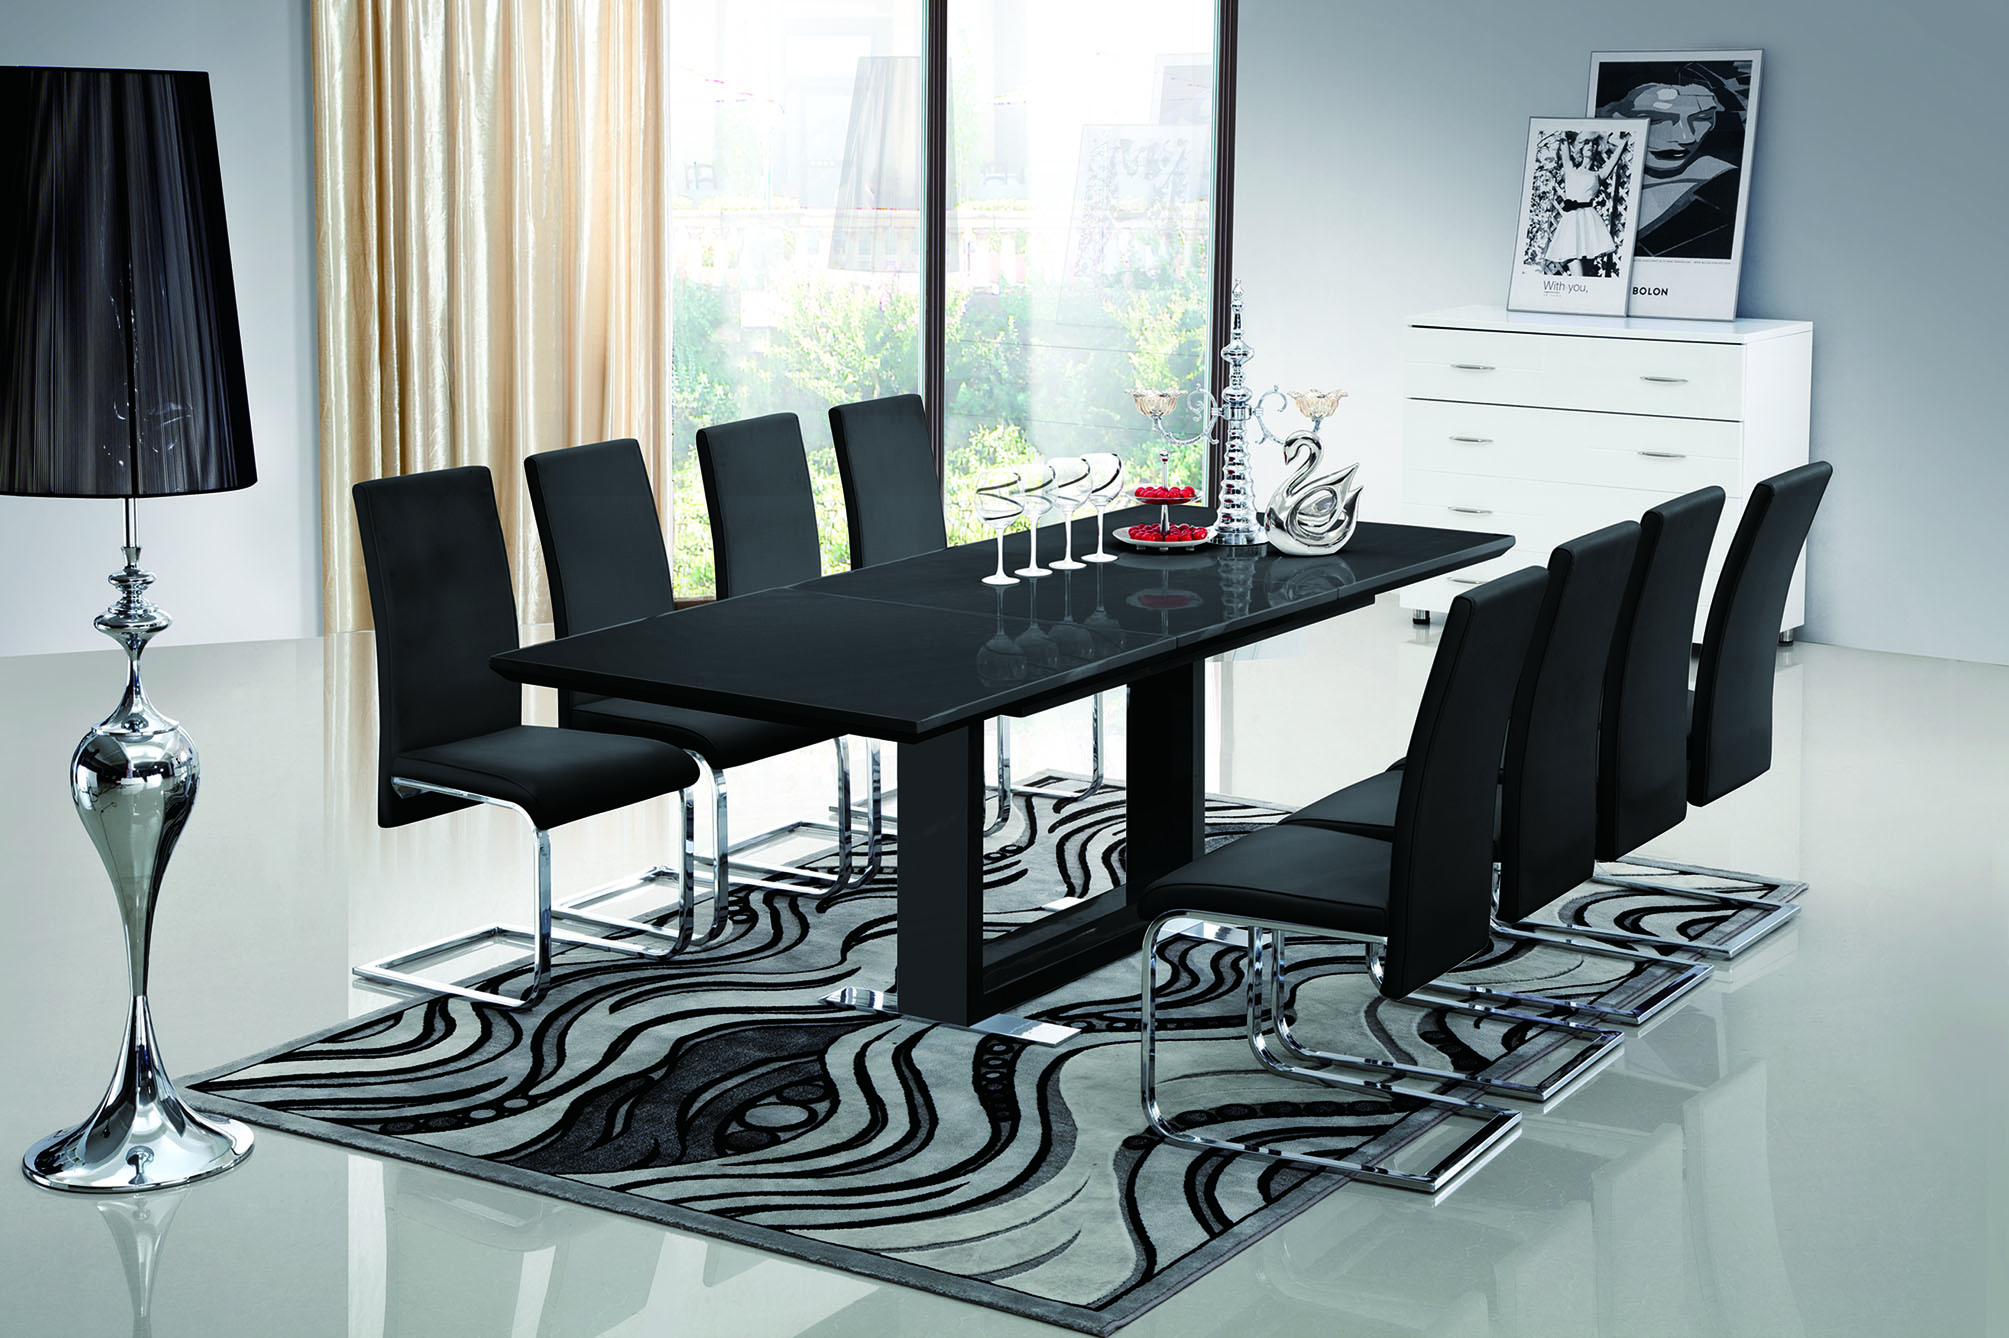 10 Superb Square Dining Table Ideas For A Contemporary: Rocka Møbler